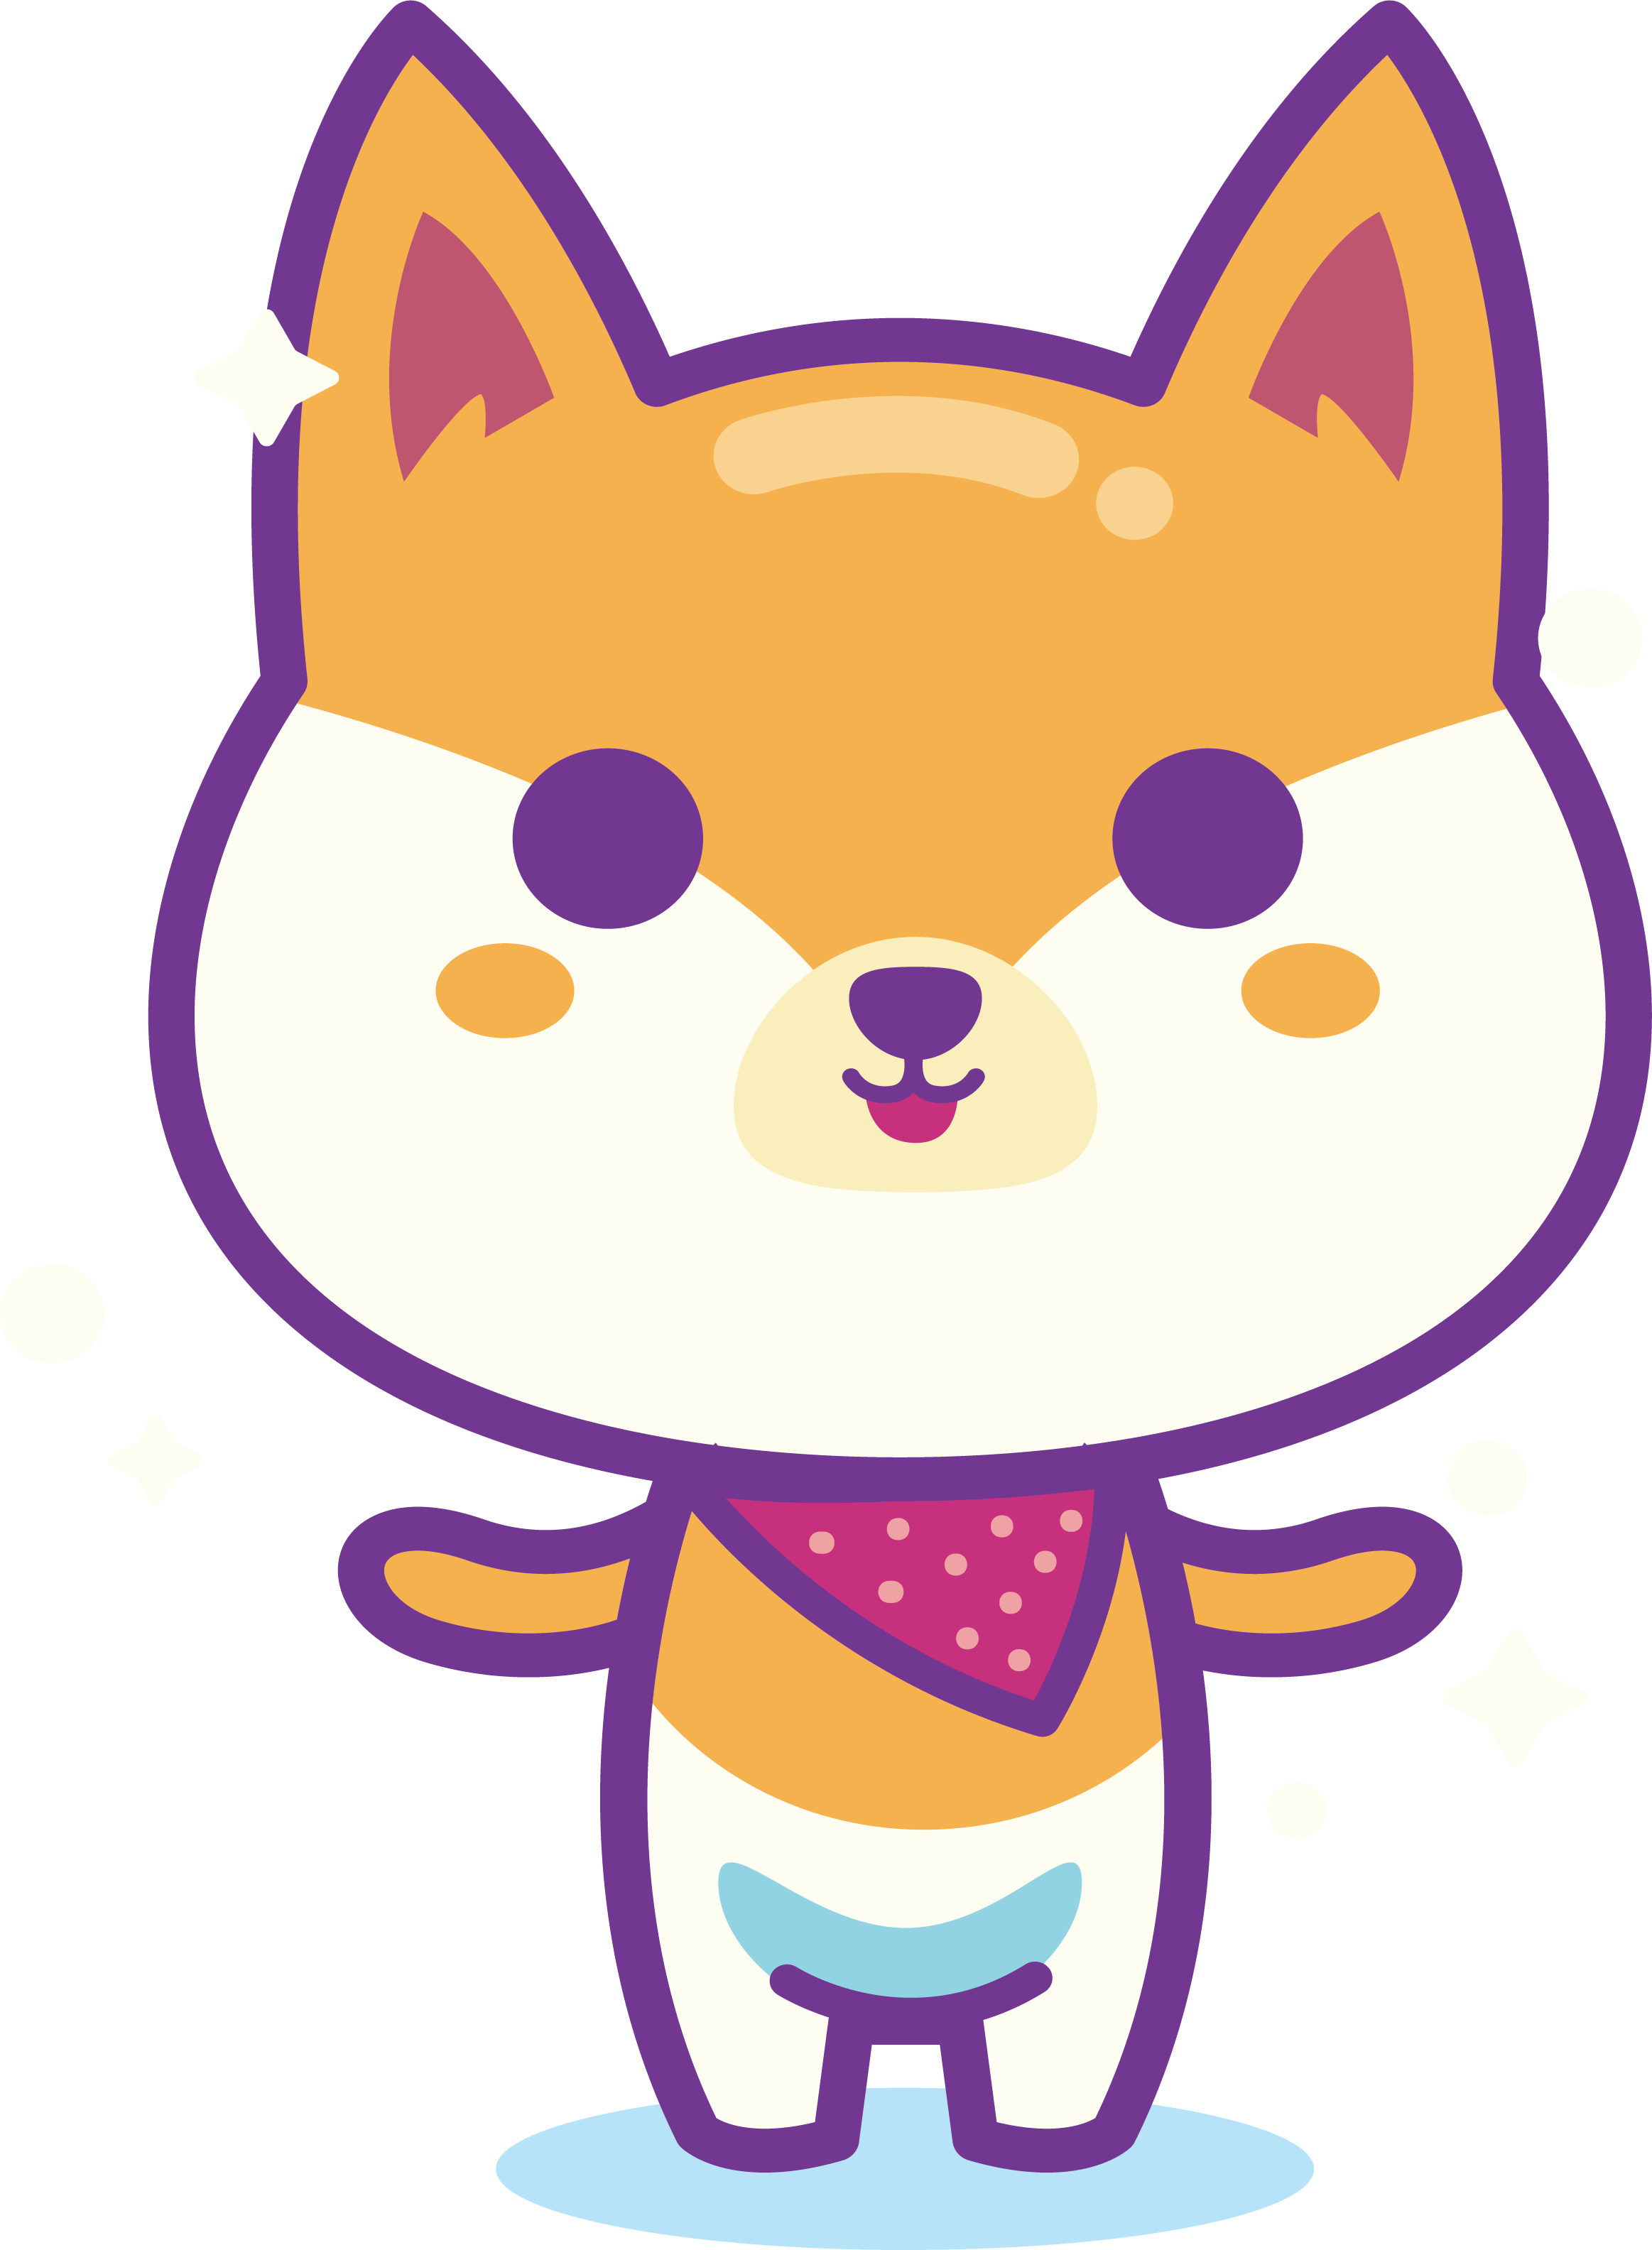 png freeuse download Shiba Inu Puppy Whiskers Cartoon Clip art